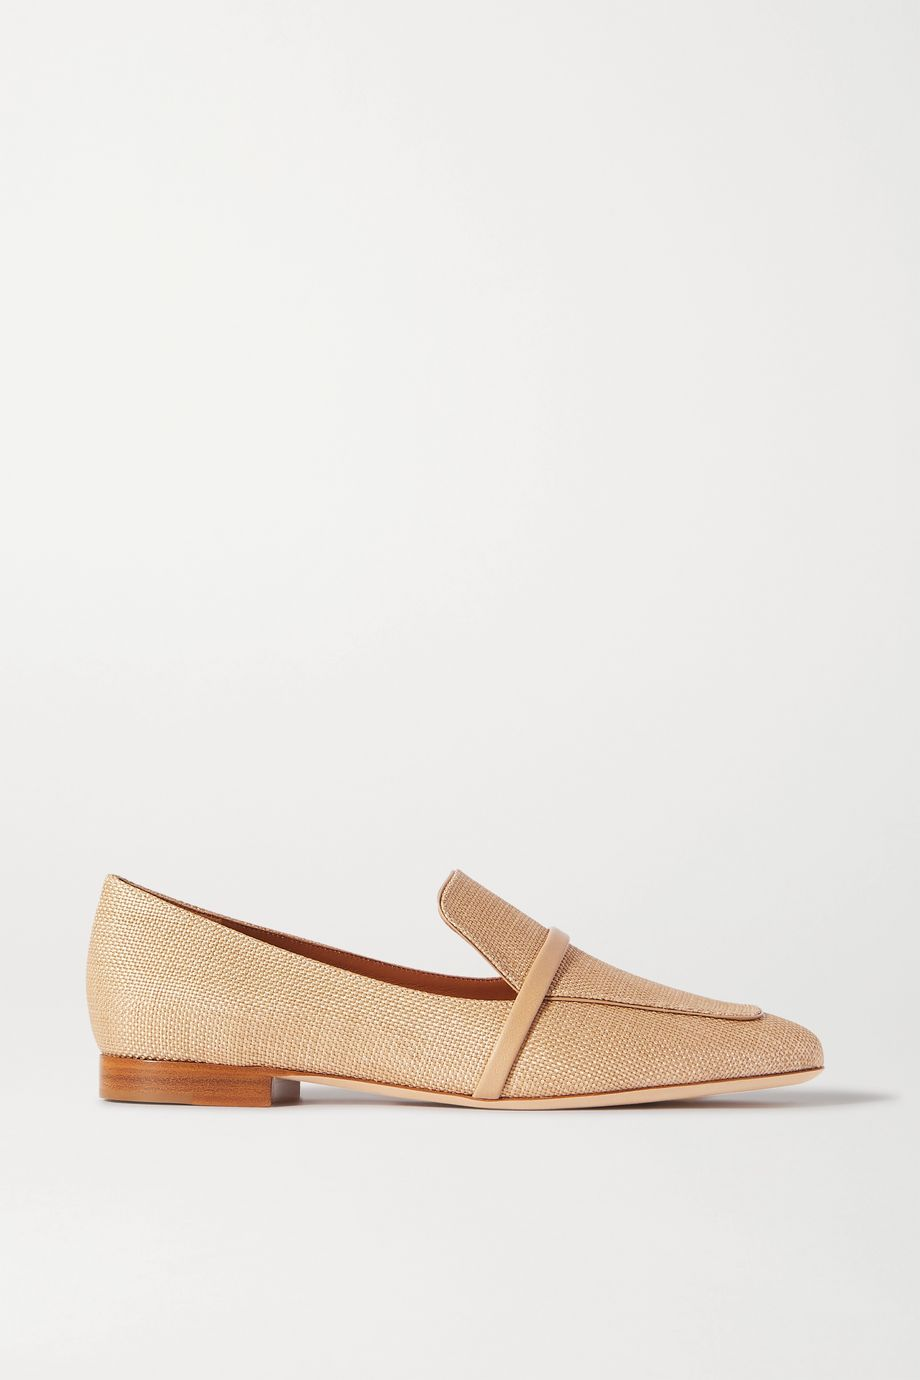 Malone Souliers Jane leather-trimmed raffia loafers